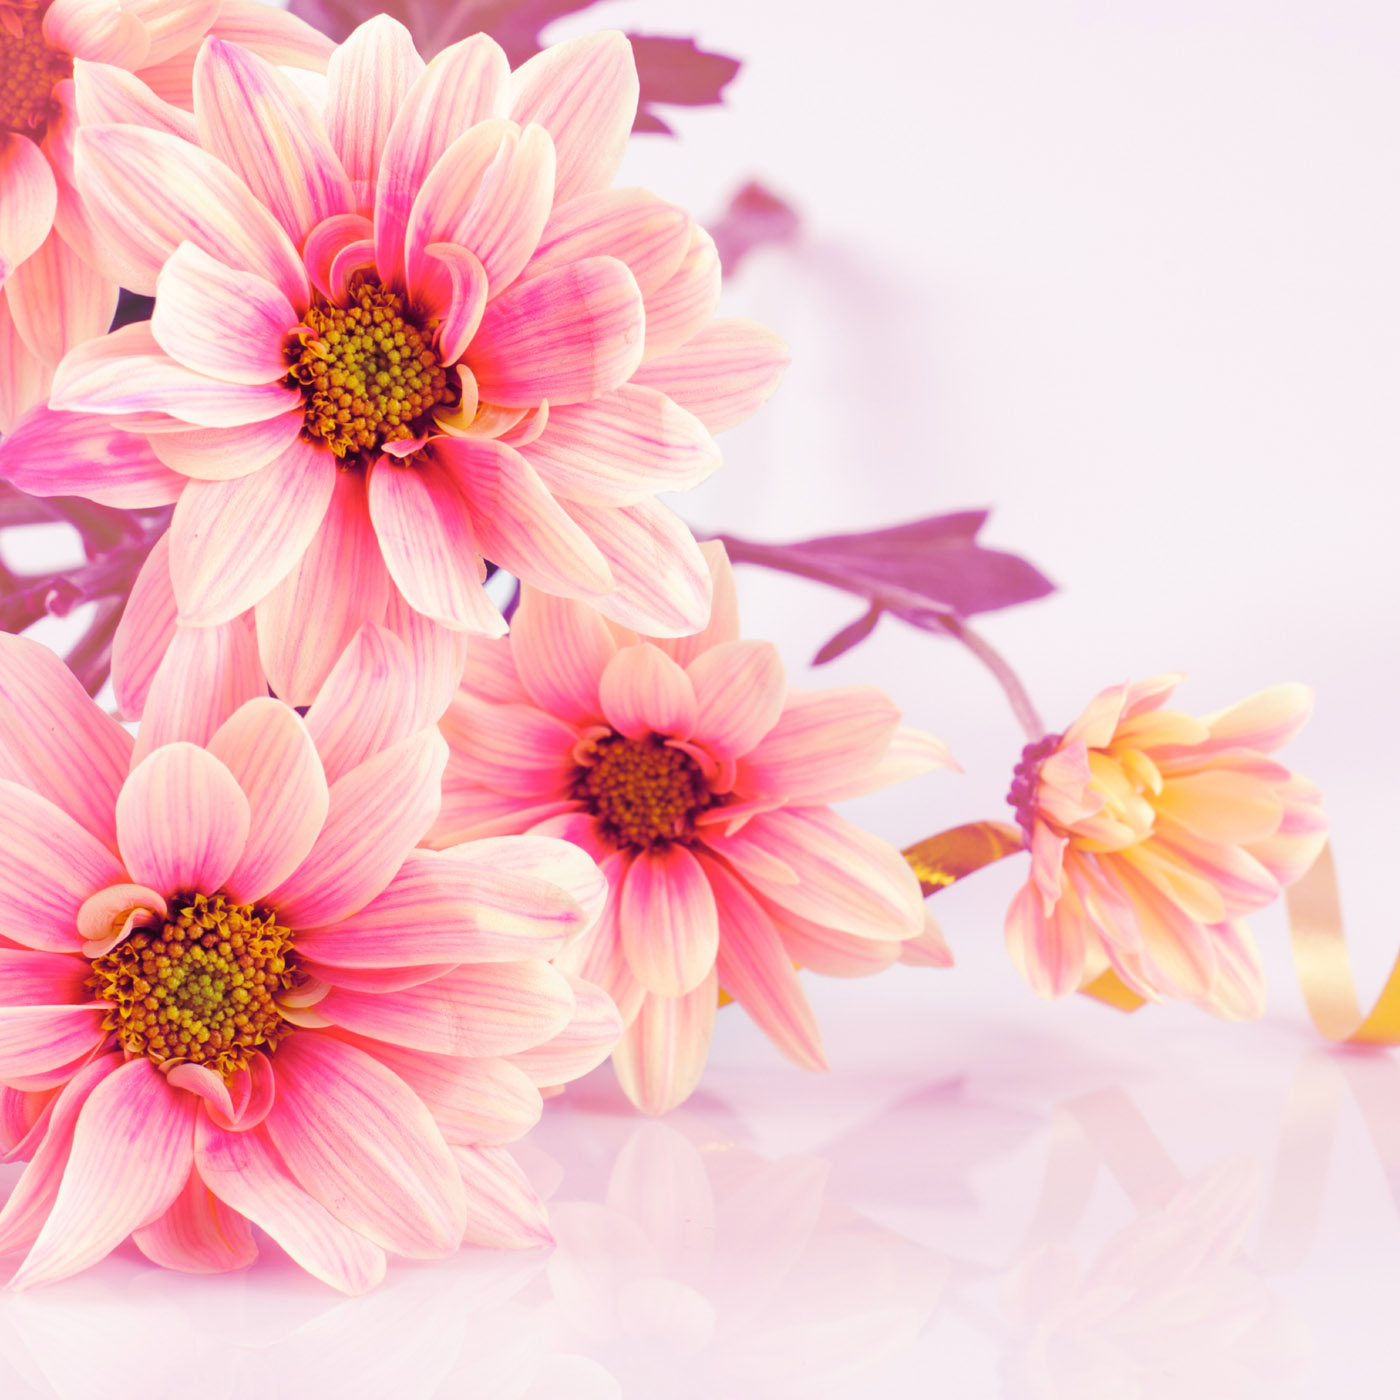 Flowers Wallpapers 31143